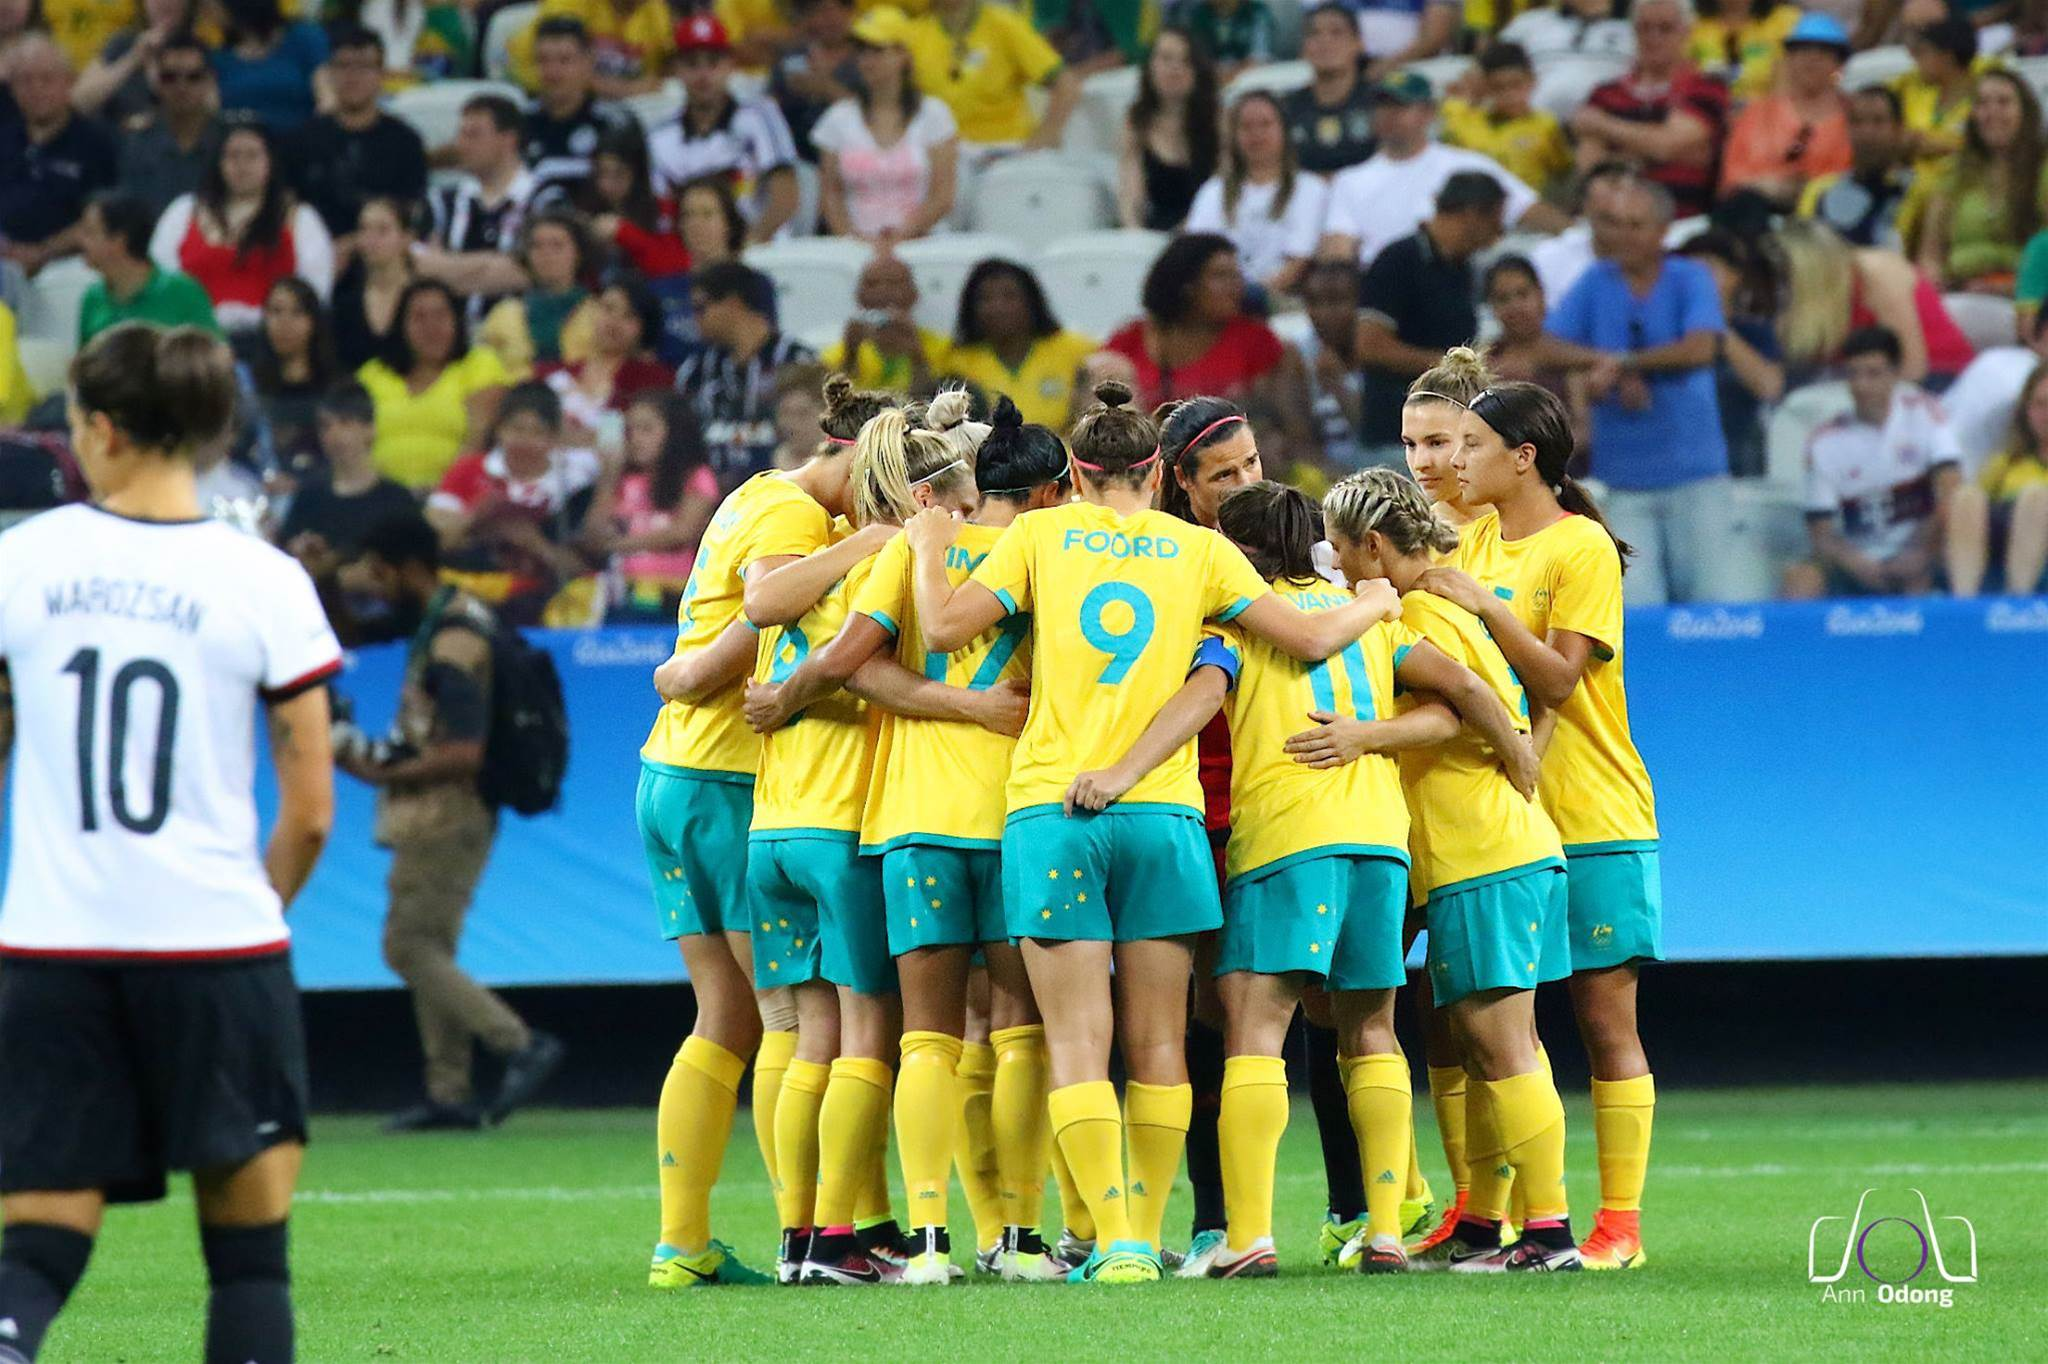 Australia invited to the 2017 Algarve Cup